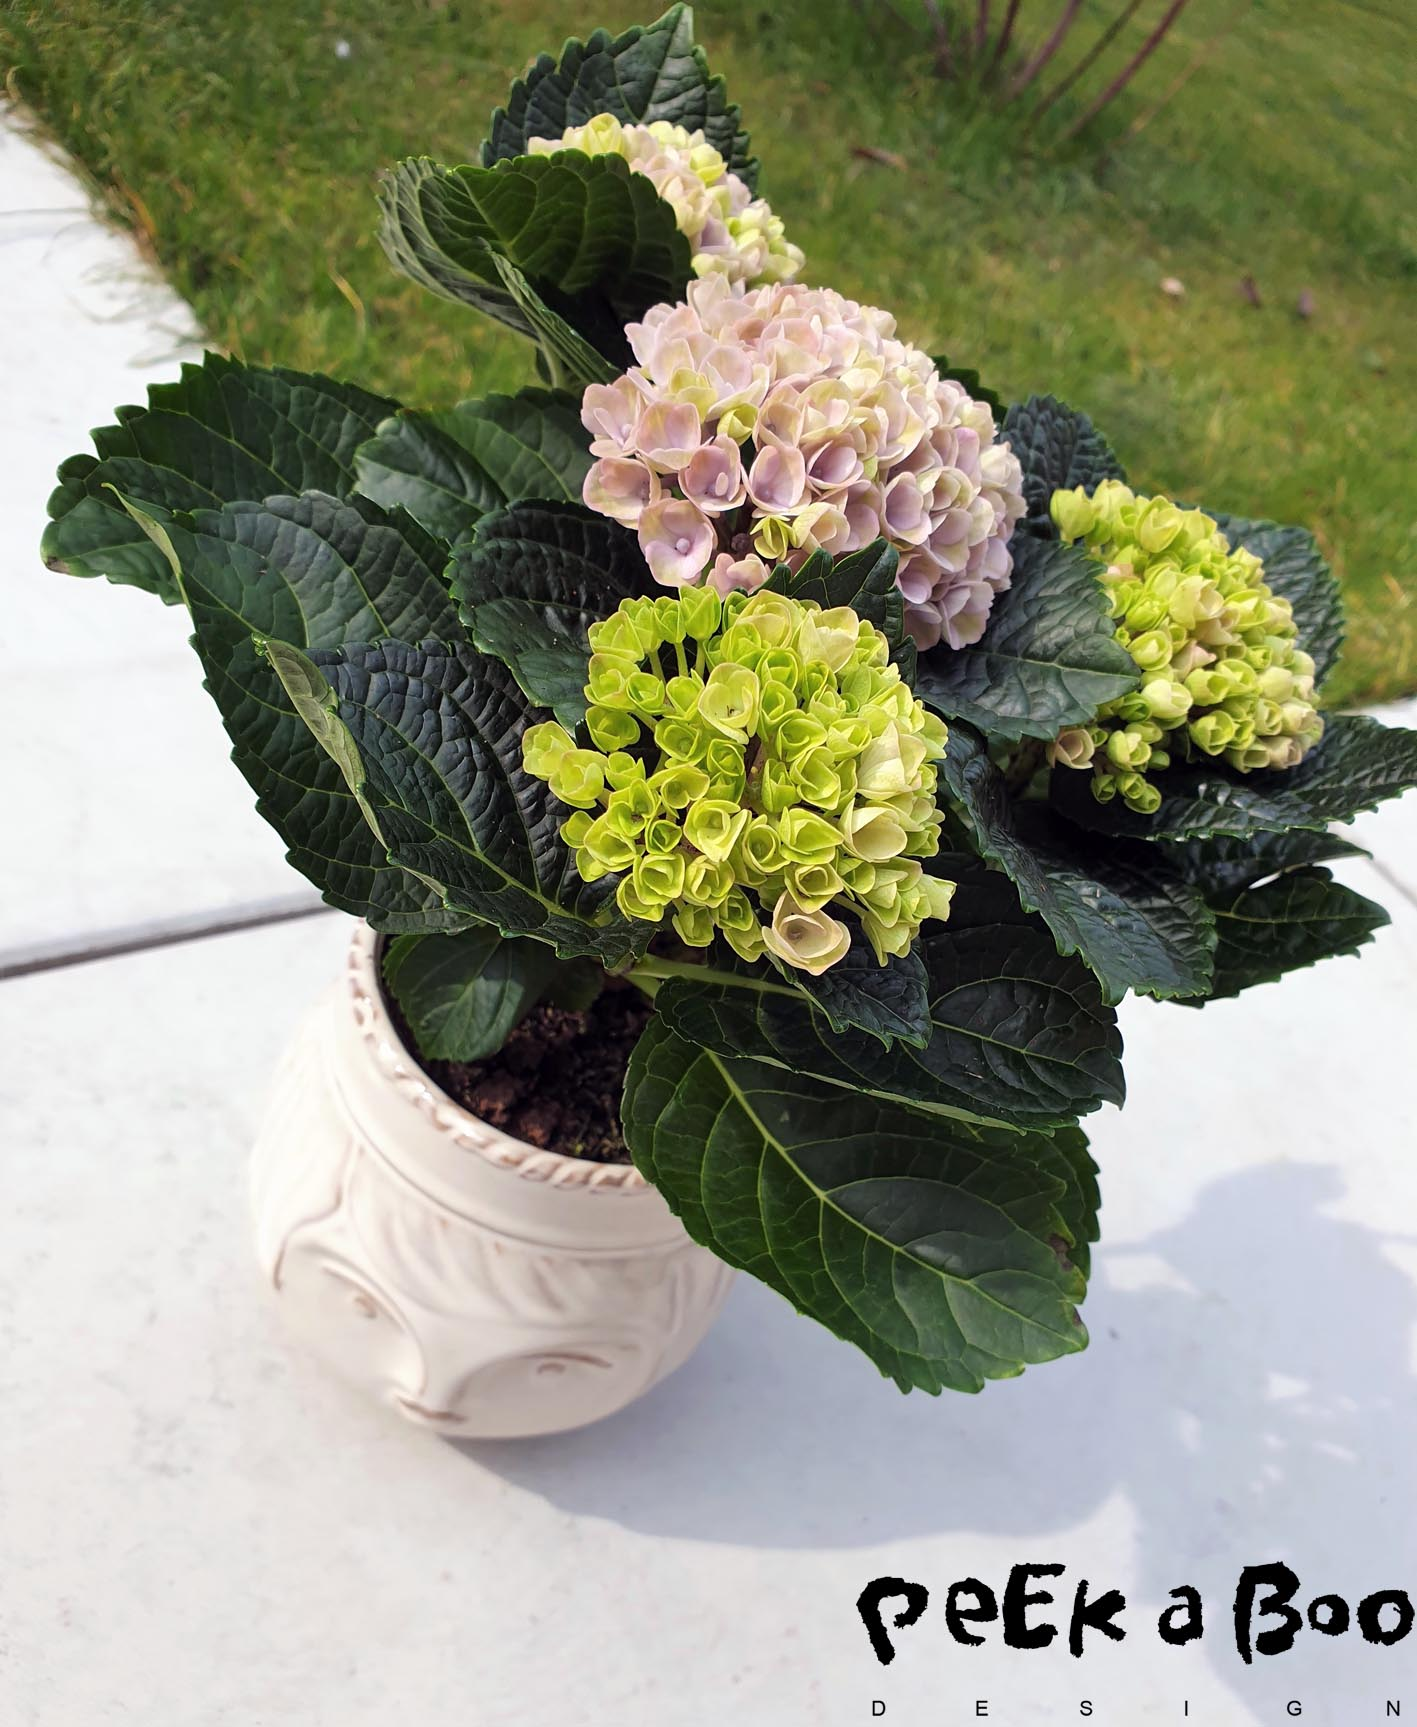 You just can't get enough of these pretty hydrangeas.